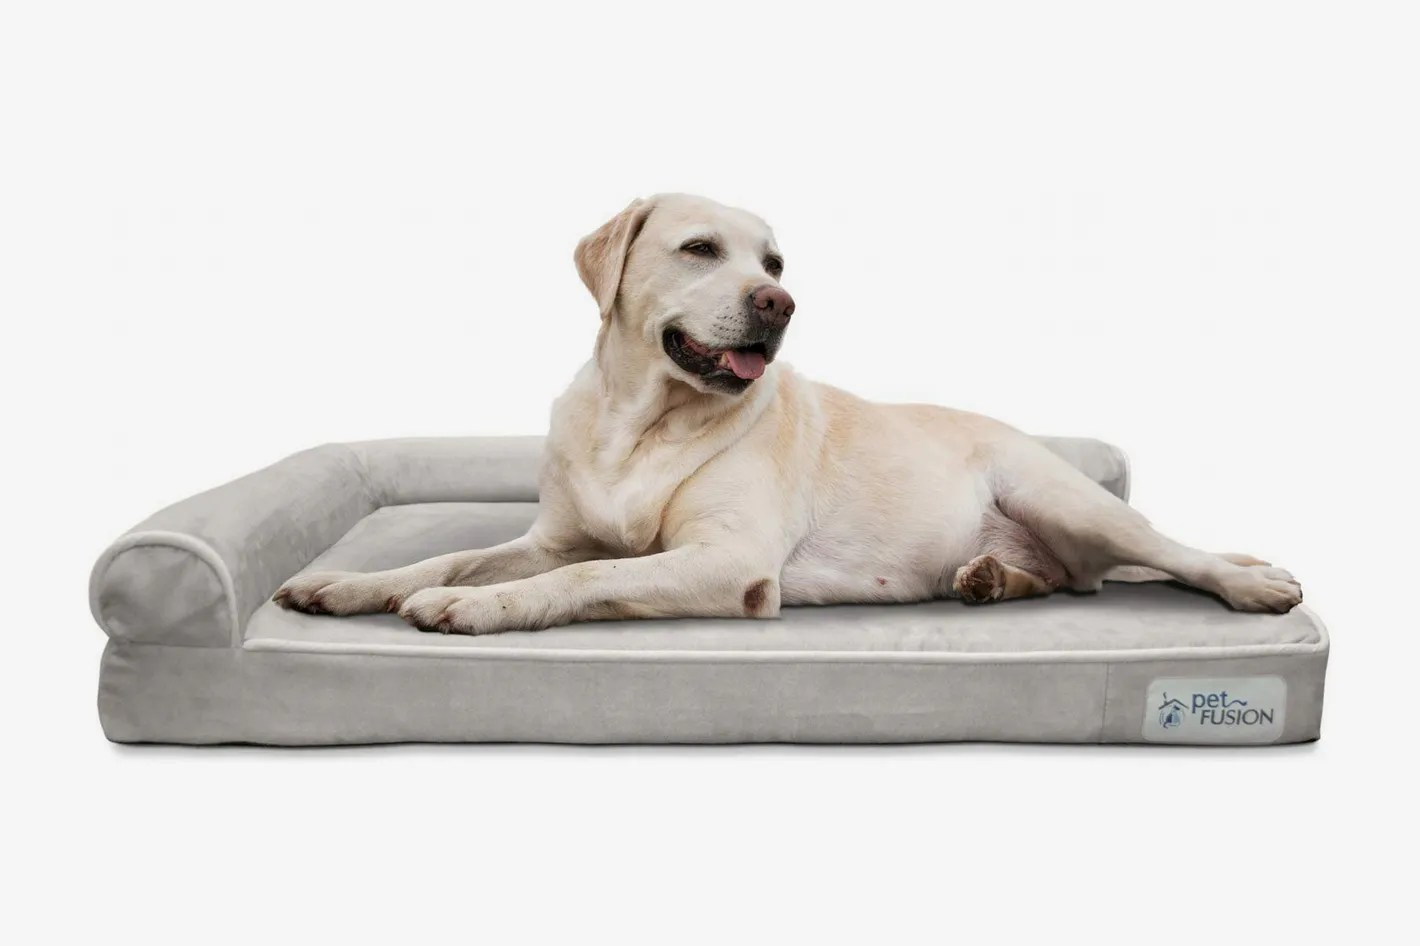 Dog Beds Pet Petfusion Memory Foam Dog Bed With Waterproof Liner Removable Cover